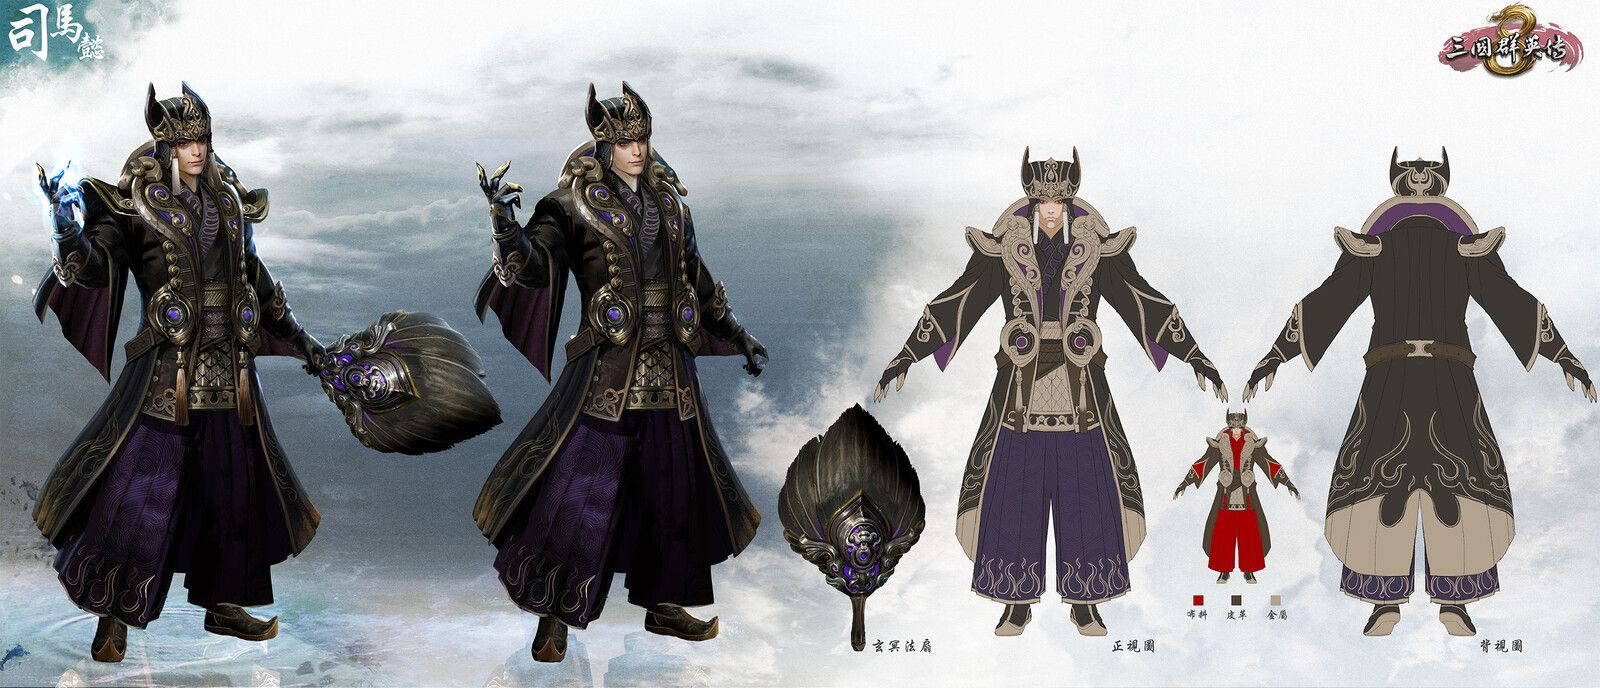 The Legend of Three Kingdoms VIII_Character concept, weichi chen